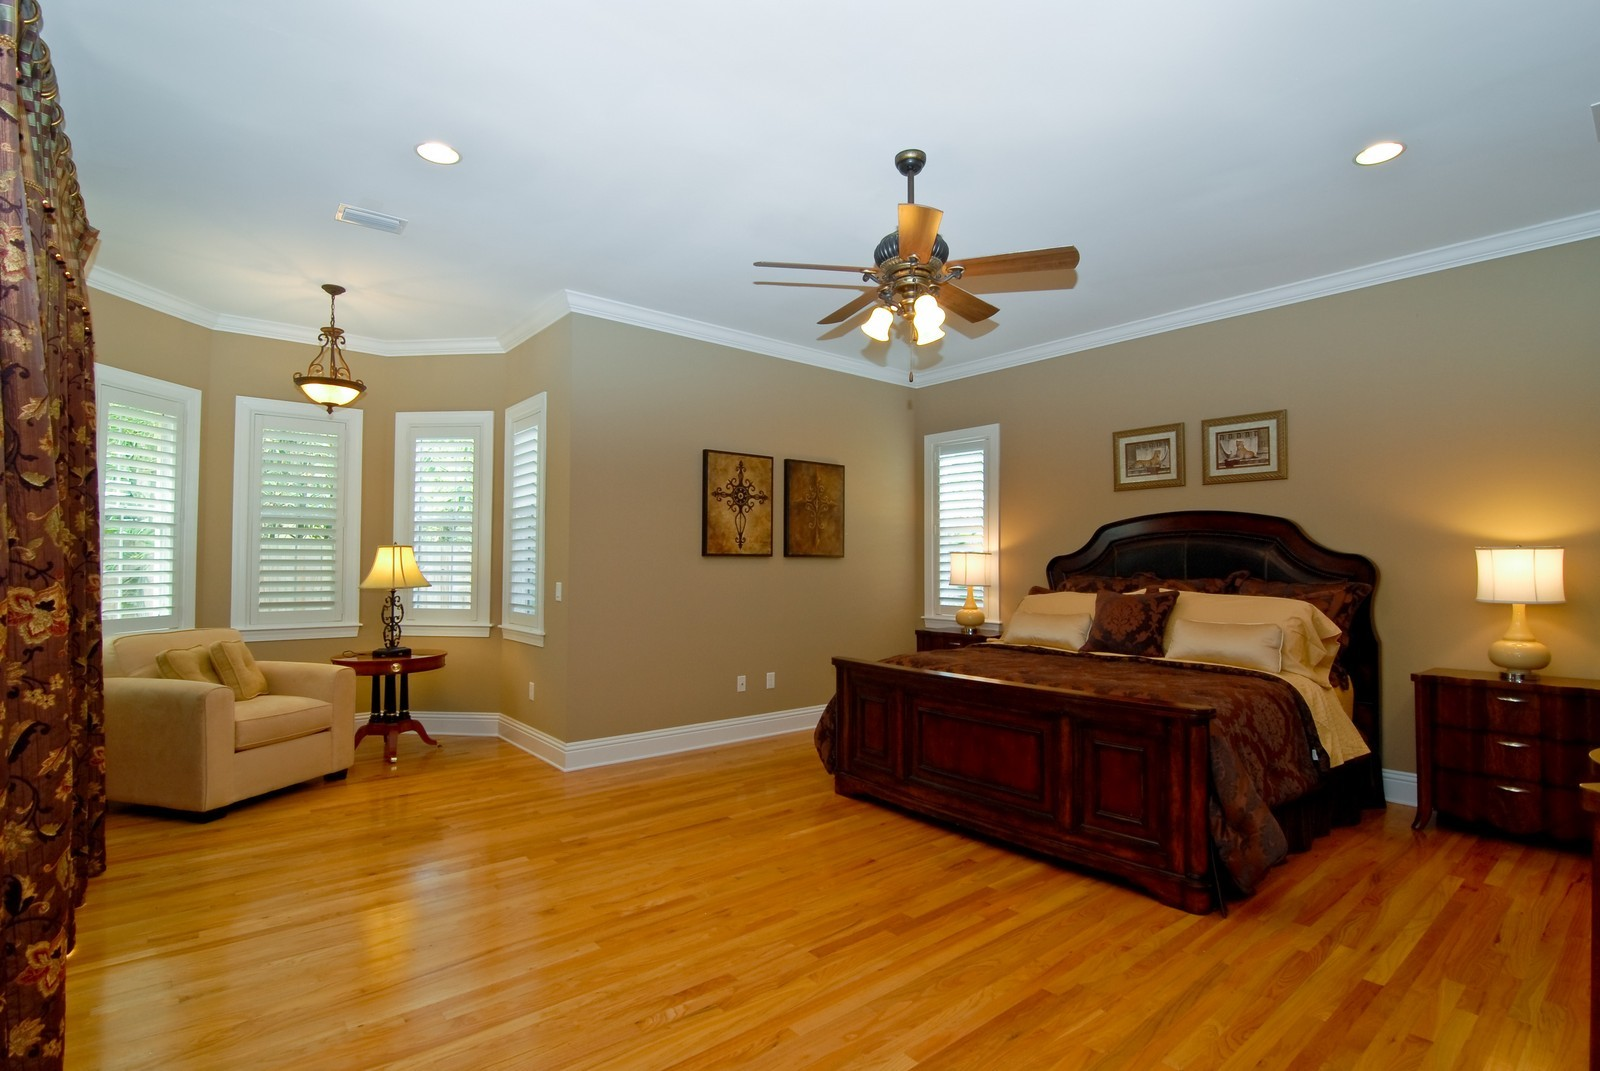 Real Estate Photography - 3107 Fountain Blvd, Tampa, FL, 33609 - Master Bedroom